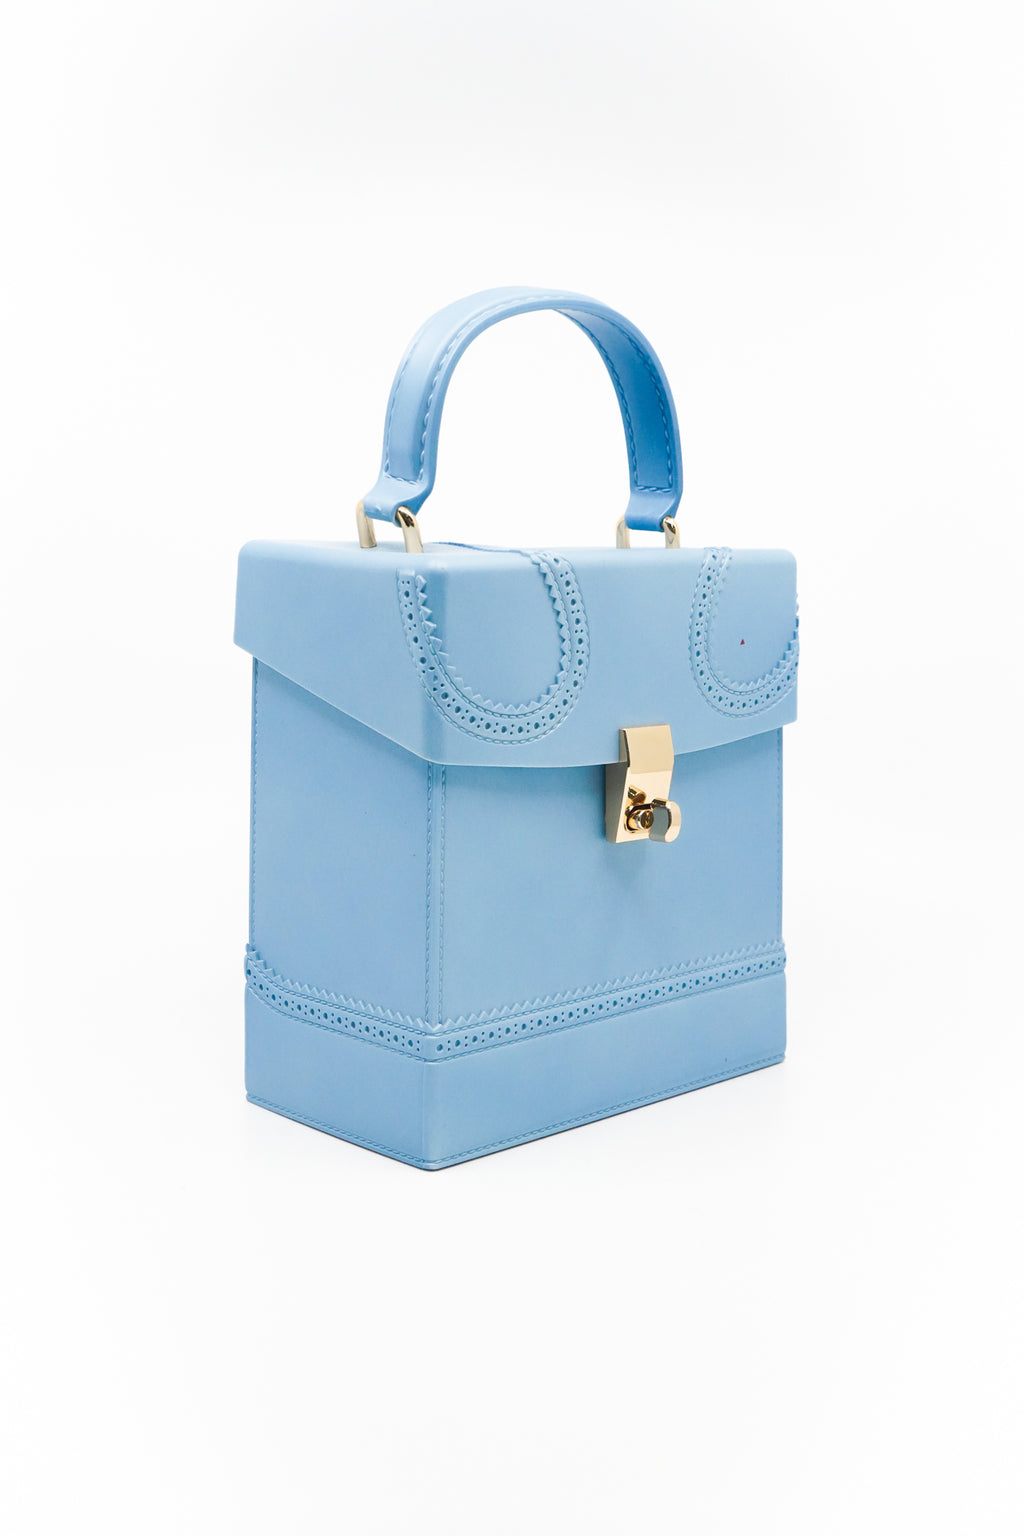 Square Box Jelly Handbag with Handle and Strap in Blue - Fashion House USA